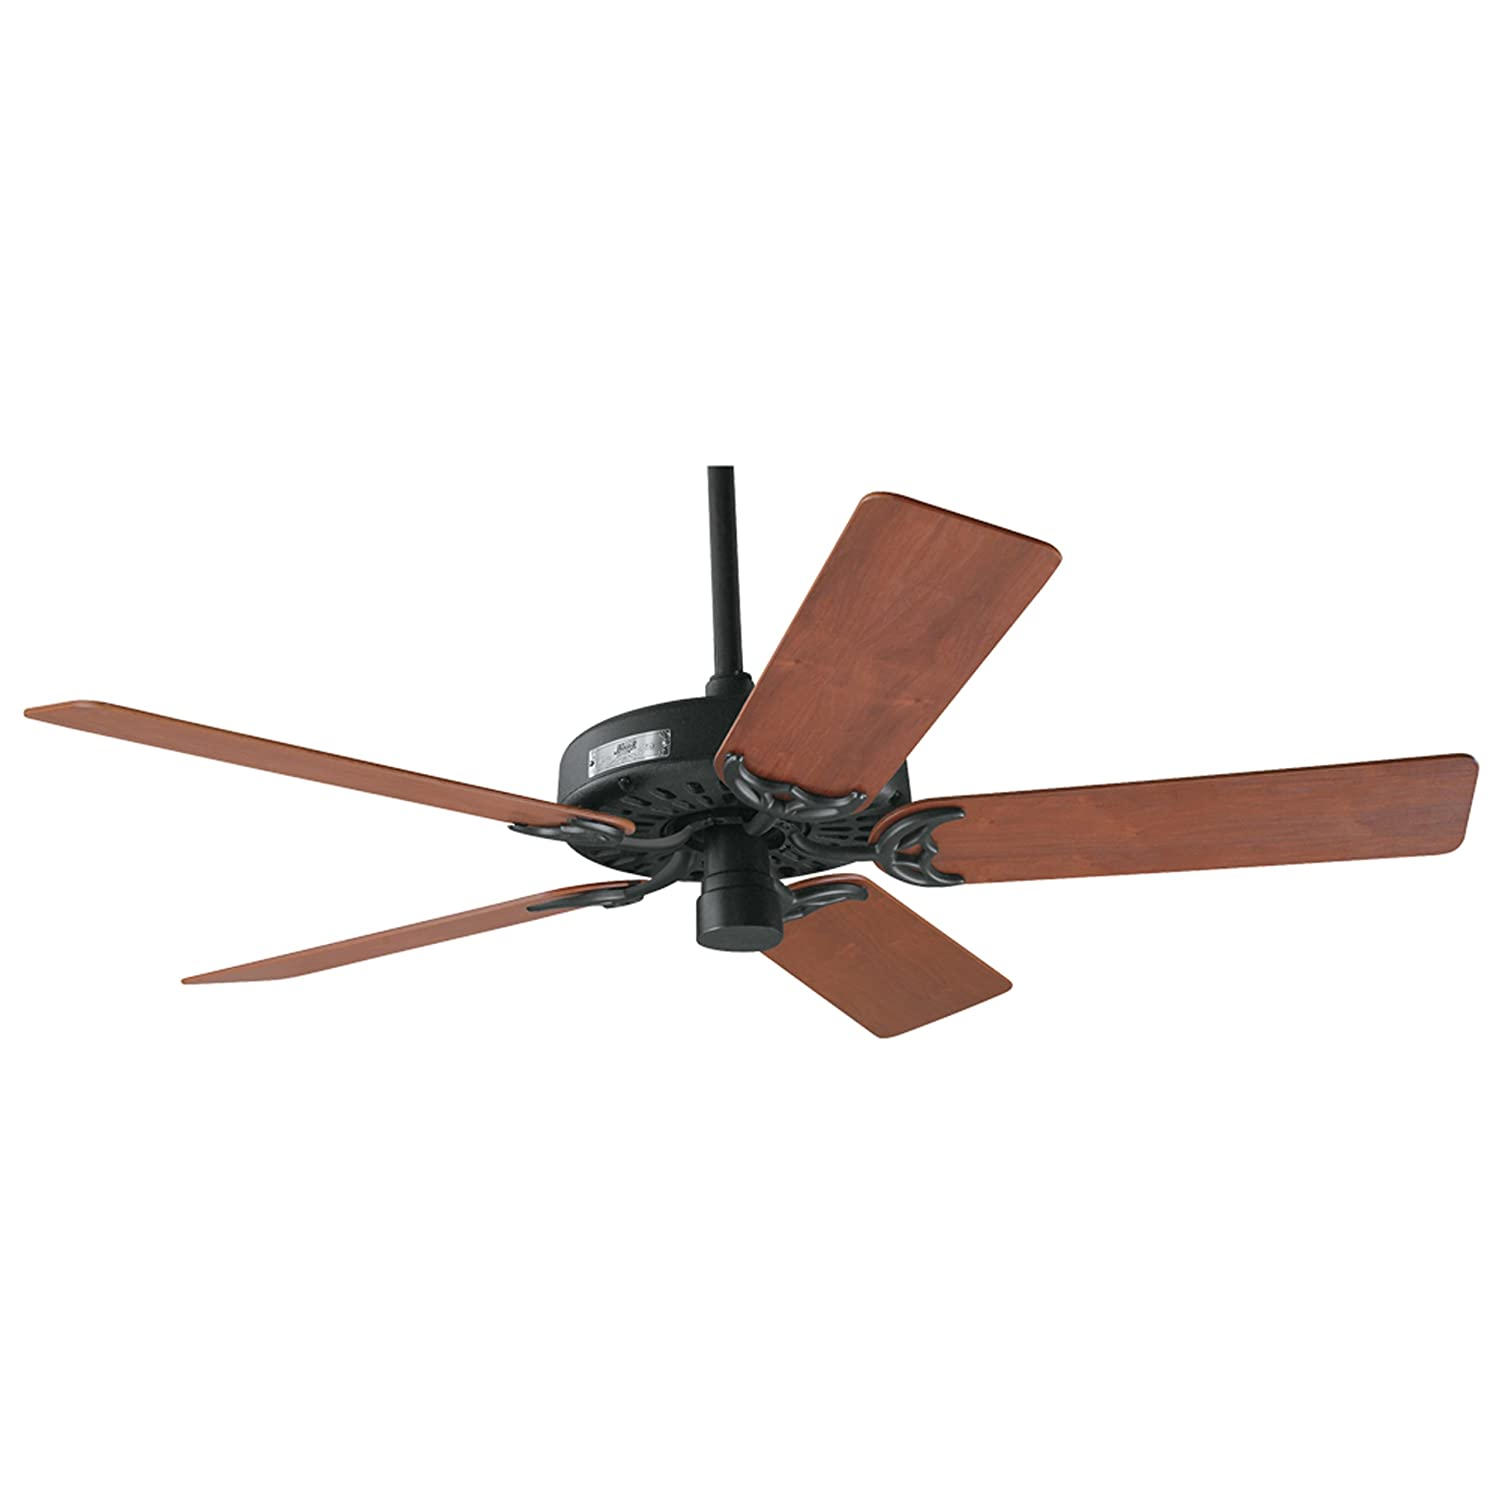 71%2BO7FyAIxL._SL1500_ hunter 23855 prestige classic original 52 inch 3 speed ceiling fan Hunter Ceiling Fan Wiring Diagram at mifinder.co